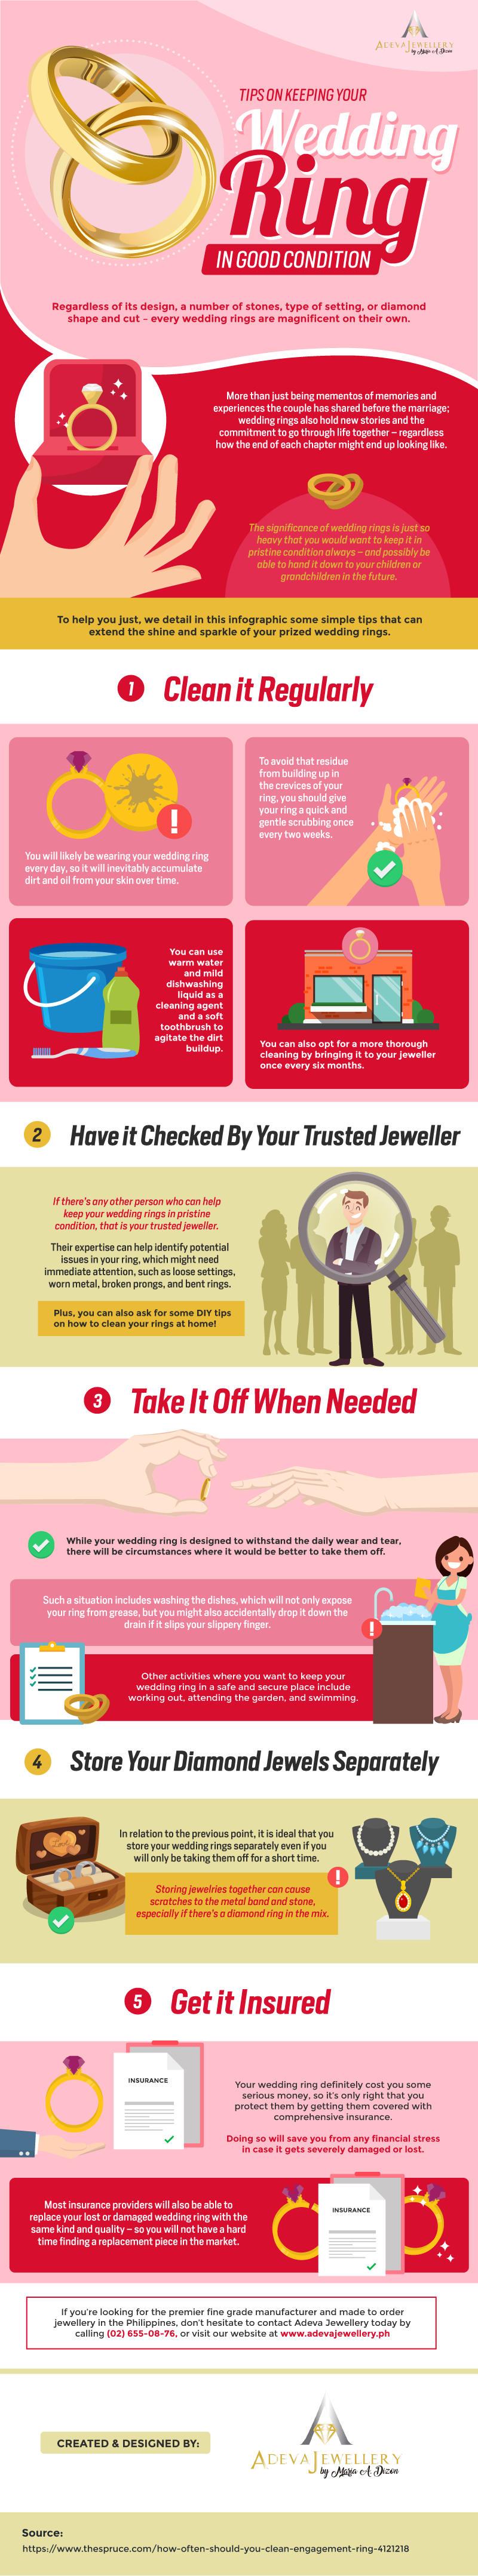 Helpful Tips in Keeping your Wedding Ring Flawless - Infographic